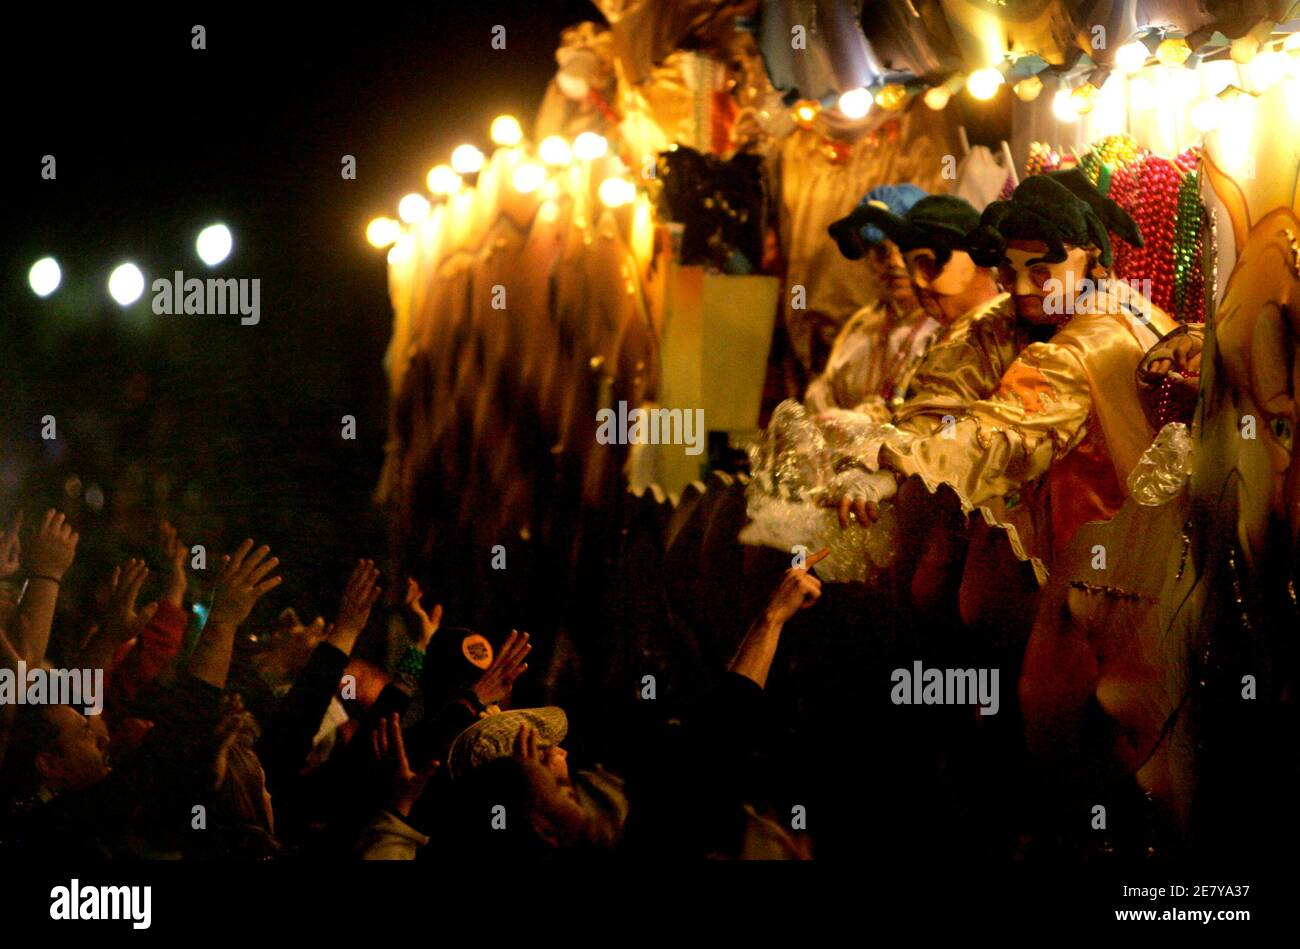 Members of the Krewe of Bacchus parade down St. Charles Avenue while celebrating the Mardi Gras weekend in New Orleans, Louisiana February 18, 2007. REUTERS/Sean Gardner (United States) Stock Photo